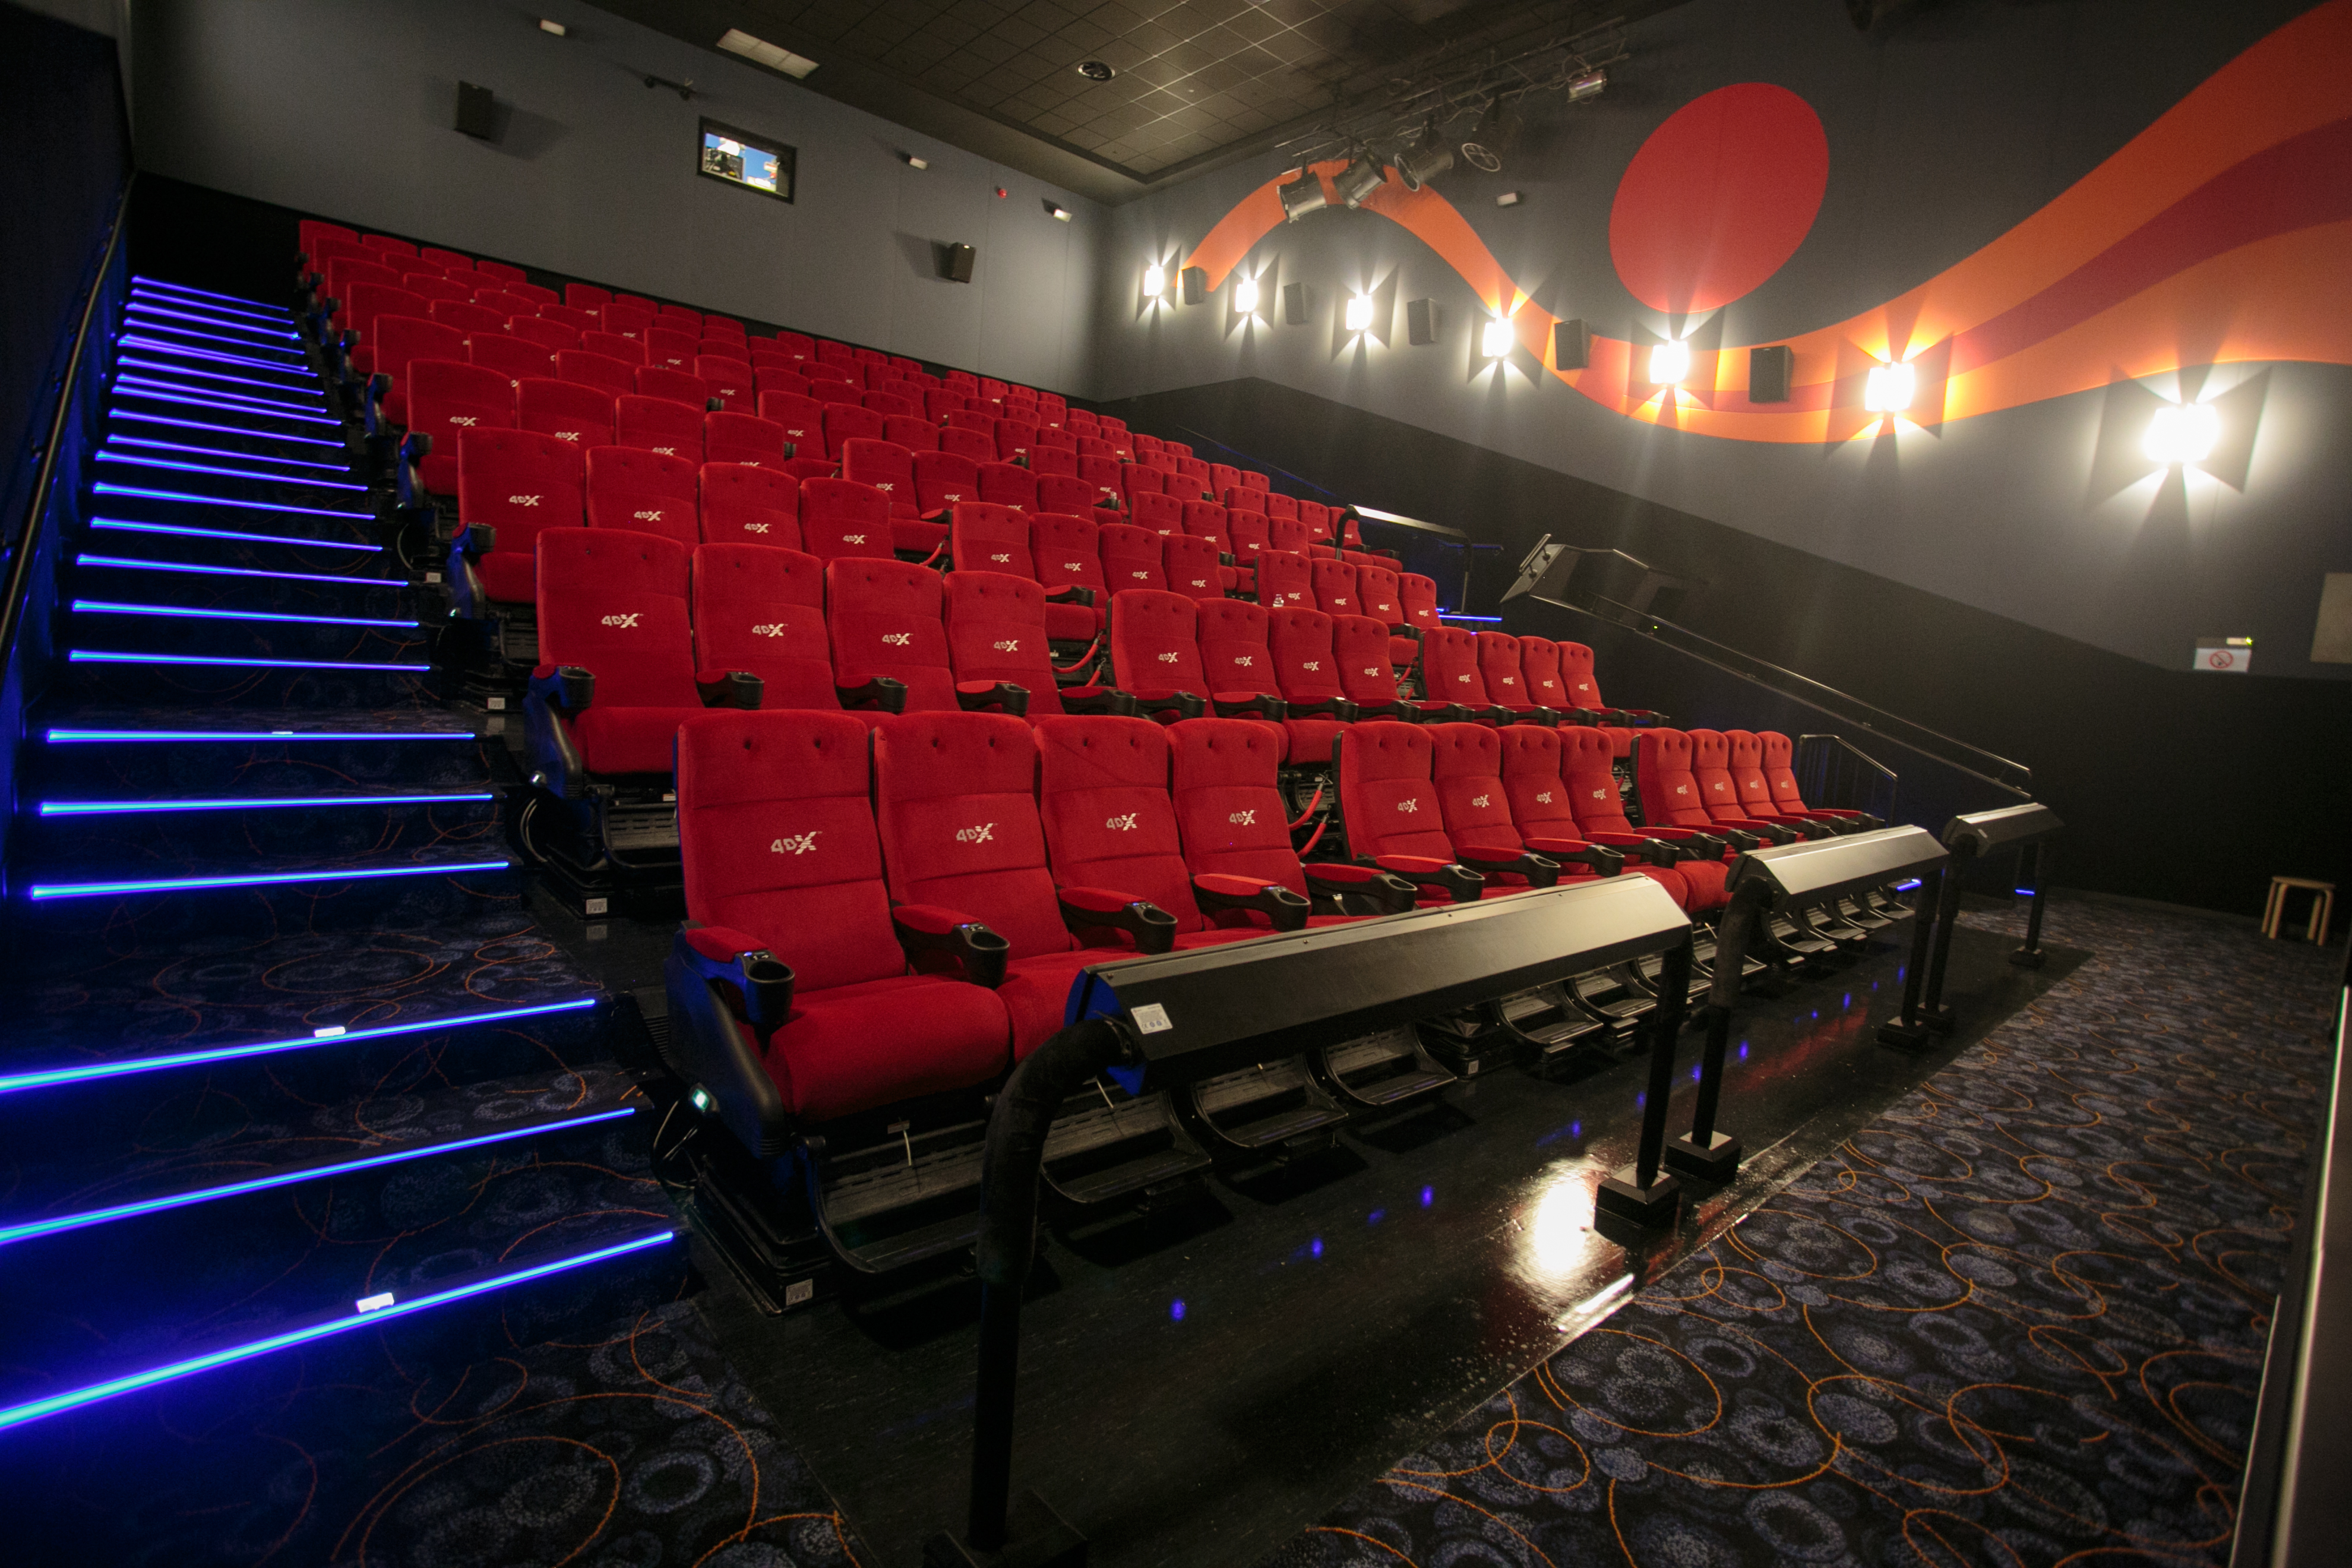 Cinema City Opens First Local 4dx Cinema Plans 14 More